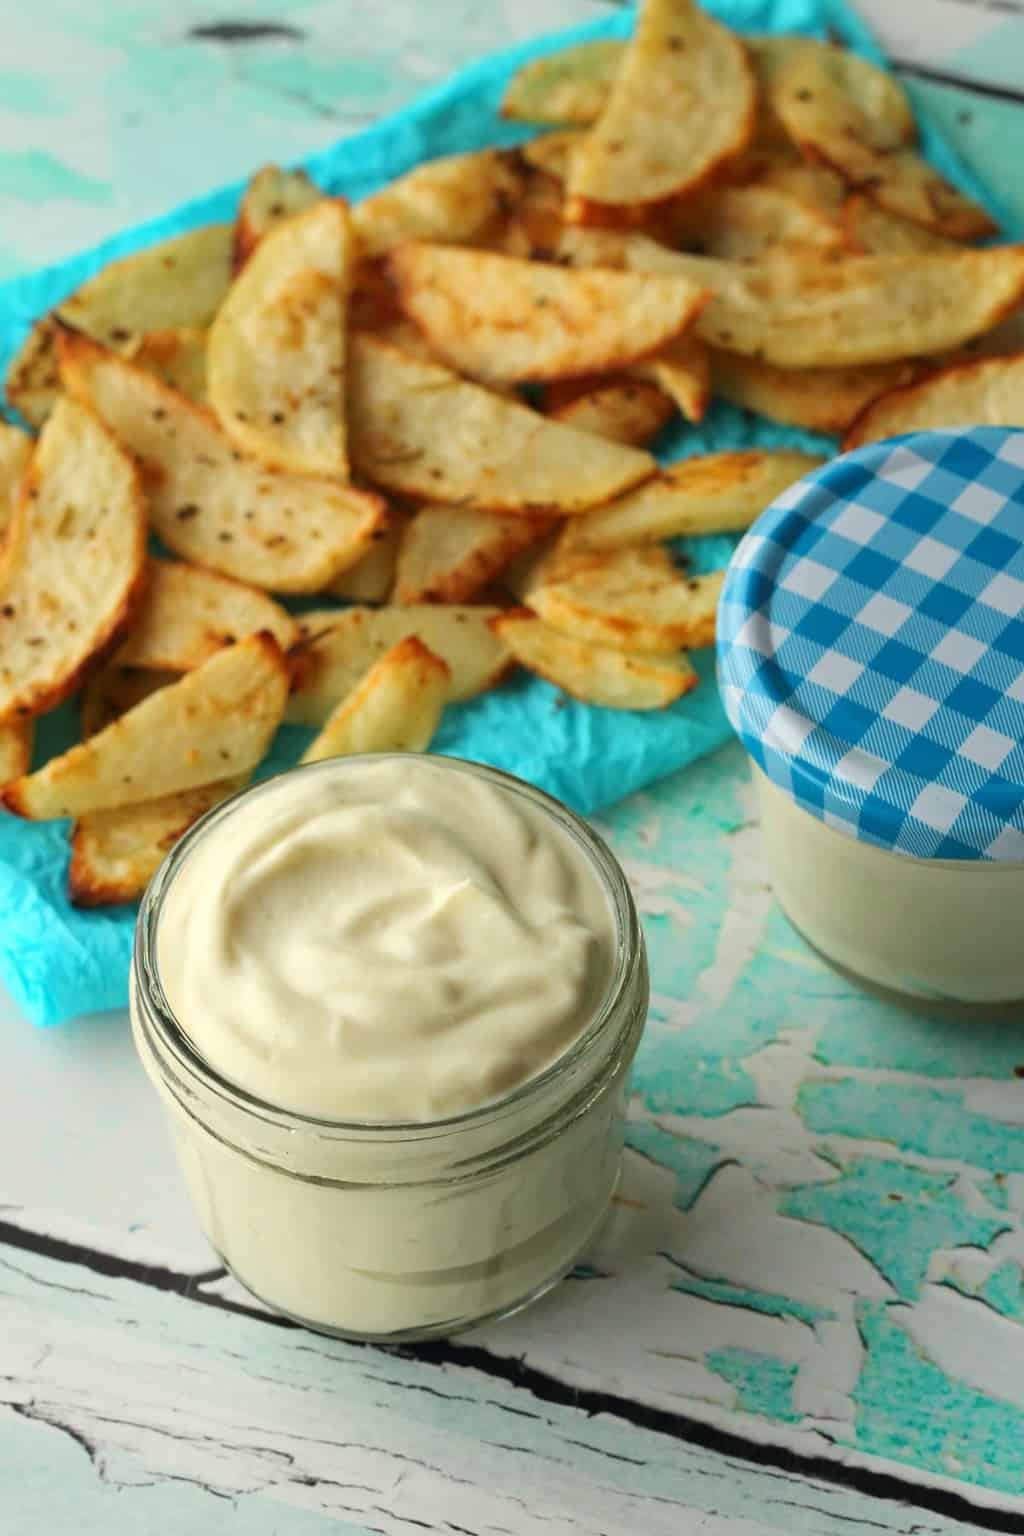 Vegan Mayo in a glass jar with baked potato chips in the background.